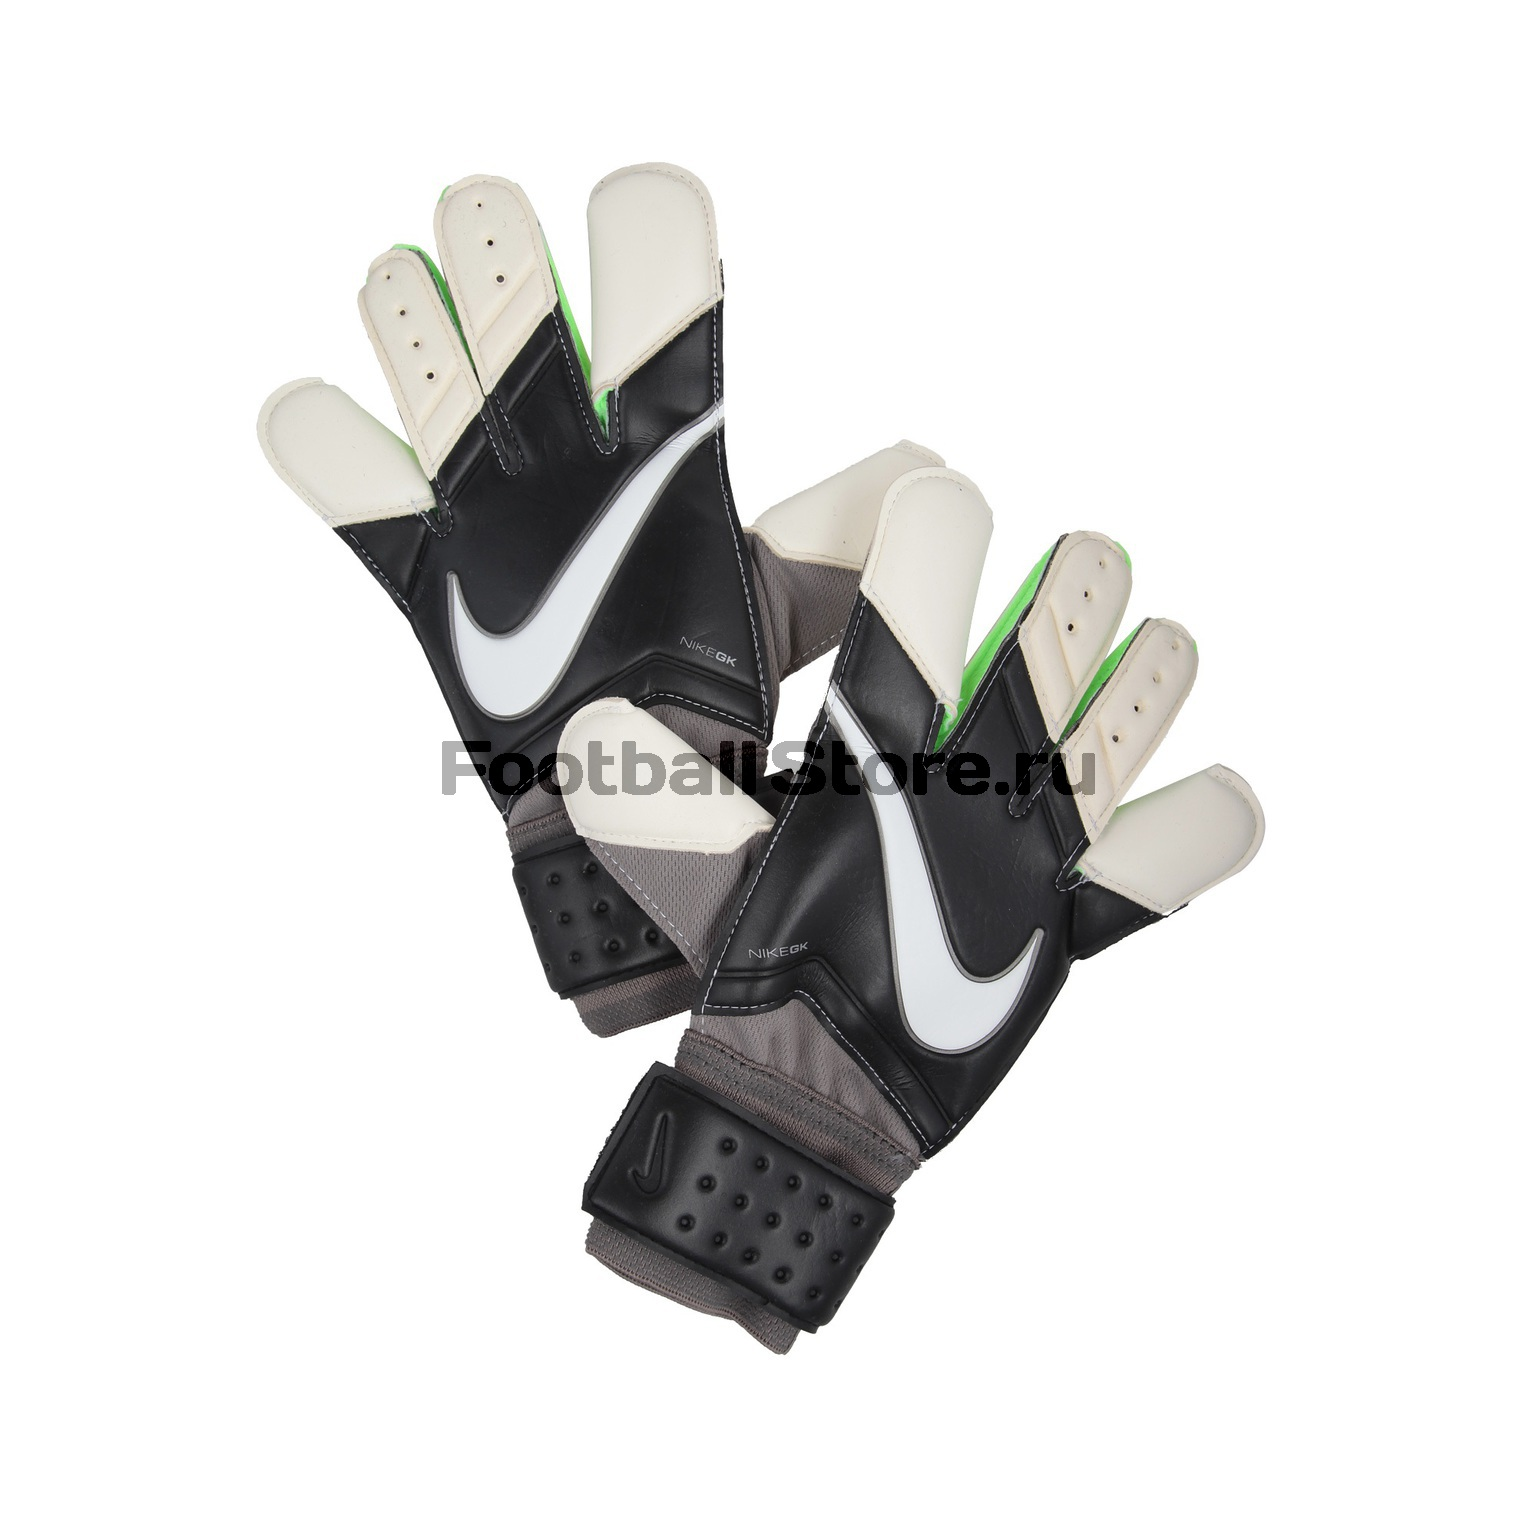 Перчатки Nike Перчатки вратарские Nike GK Vapor Grip 3 GS0275-098 спортинвентарь nike чехол для iphone 6 на руку nike vapor flash arm band 2 0 n rn 50 078 os